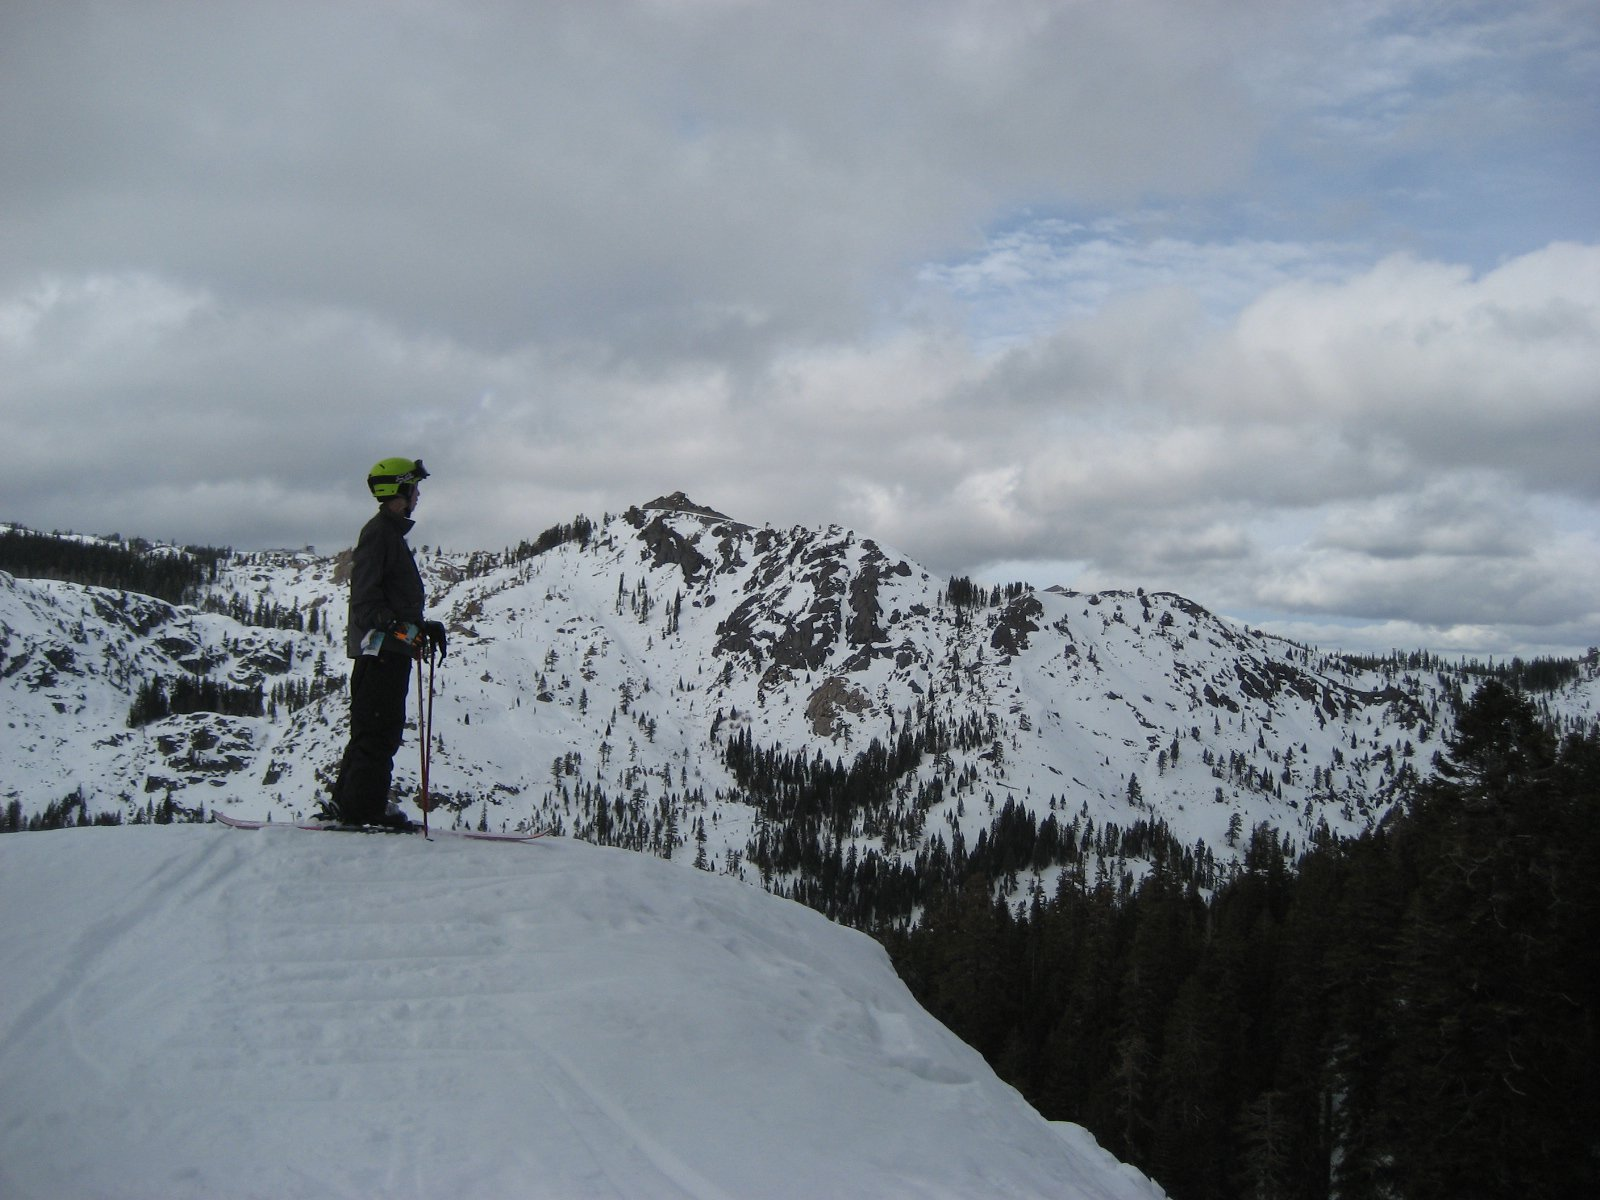 Pausing before Dropping in, Alpine Meadows